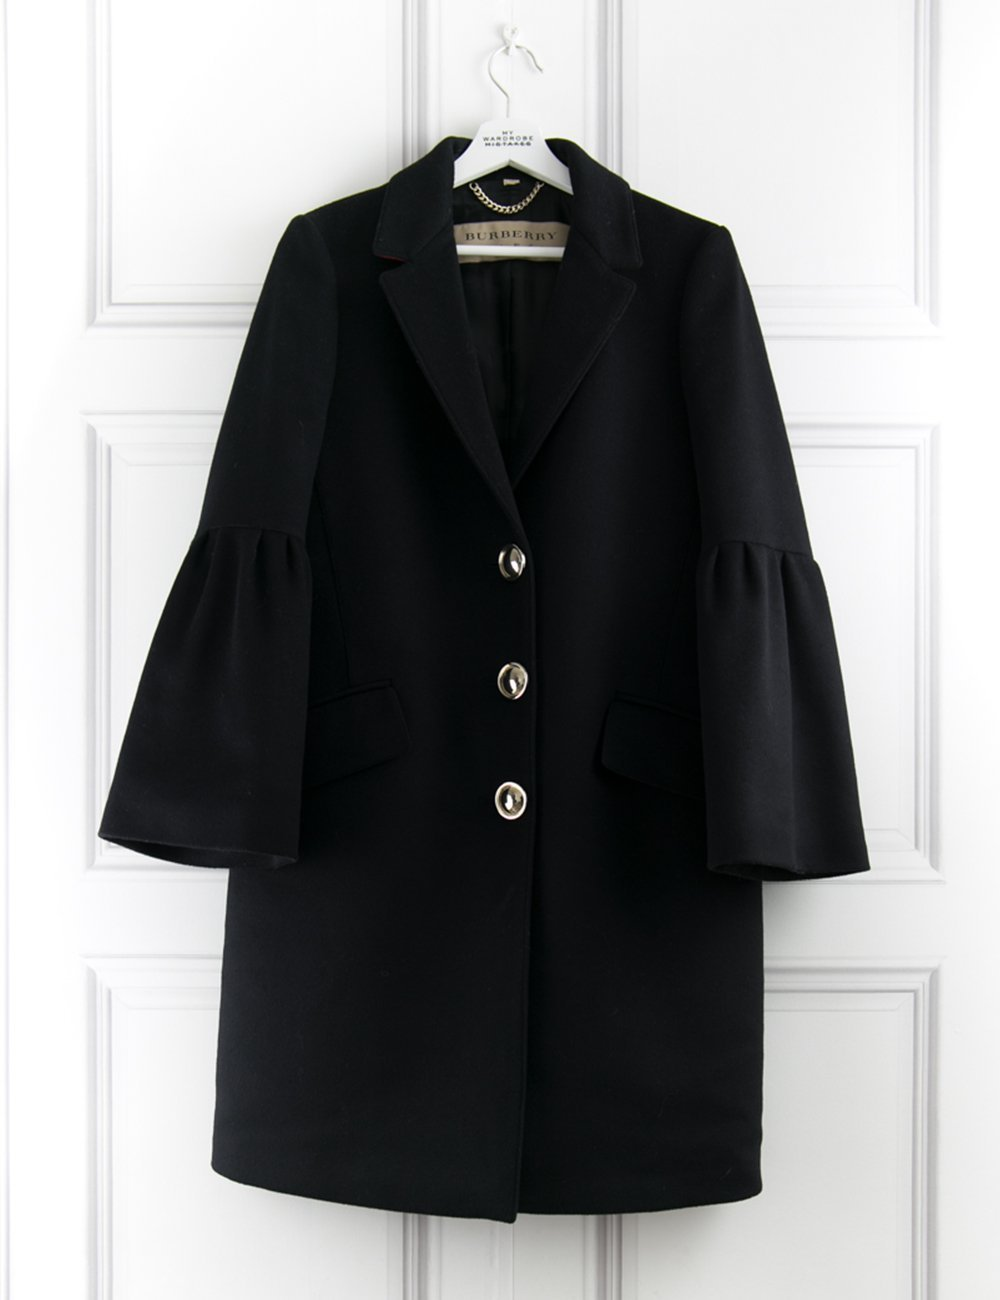 BURBERRY CLOTHING 3 buttons coats with oversize sleeves